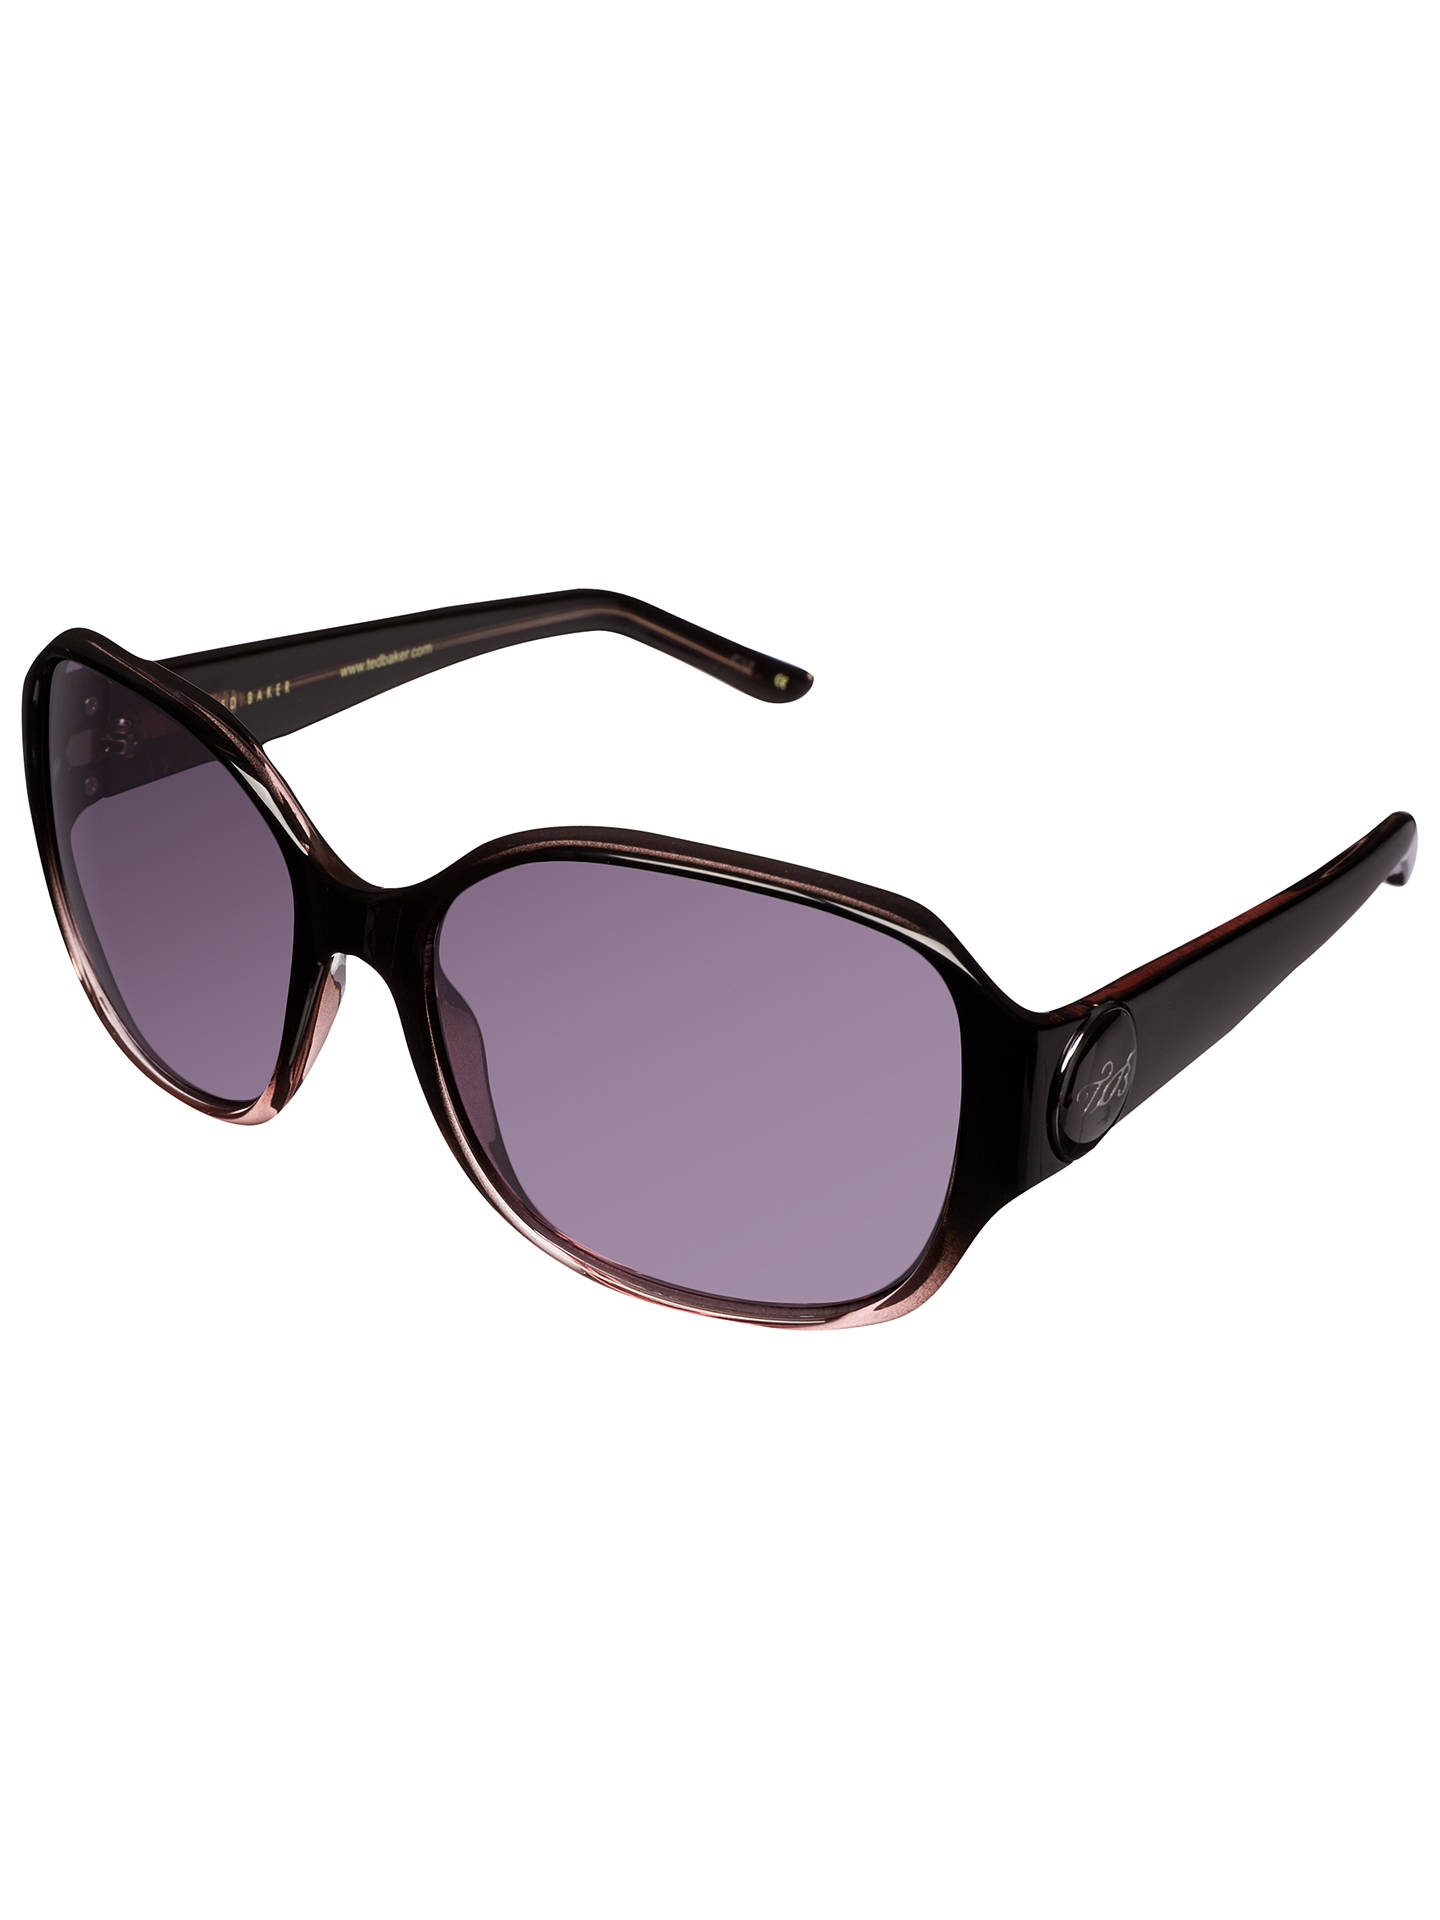 a5b6ceb233180 Buy Ted Baker TB1254 Beverly Sunglasses